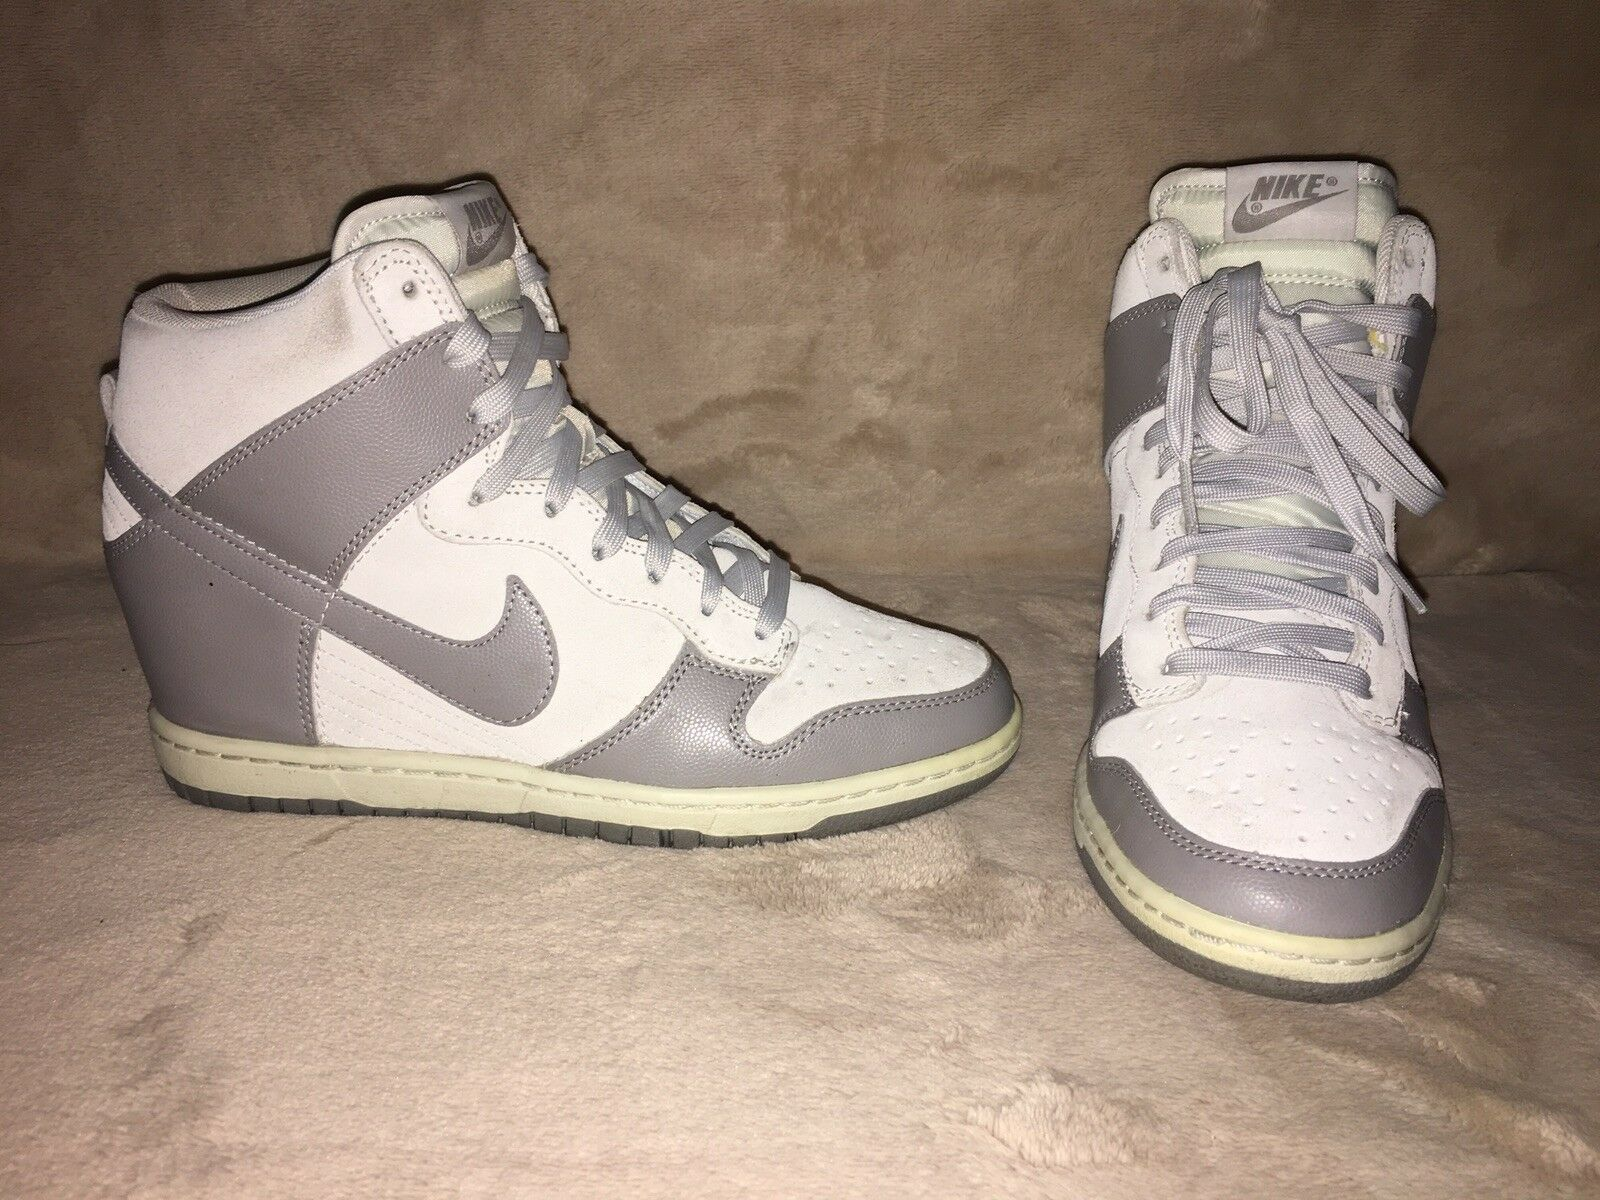 Nike Dunk Sky Hi Grey Hidden Wedge Sz 8.5